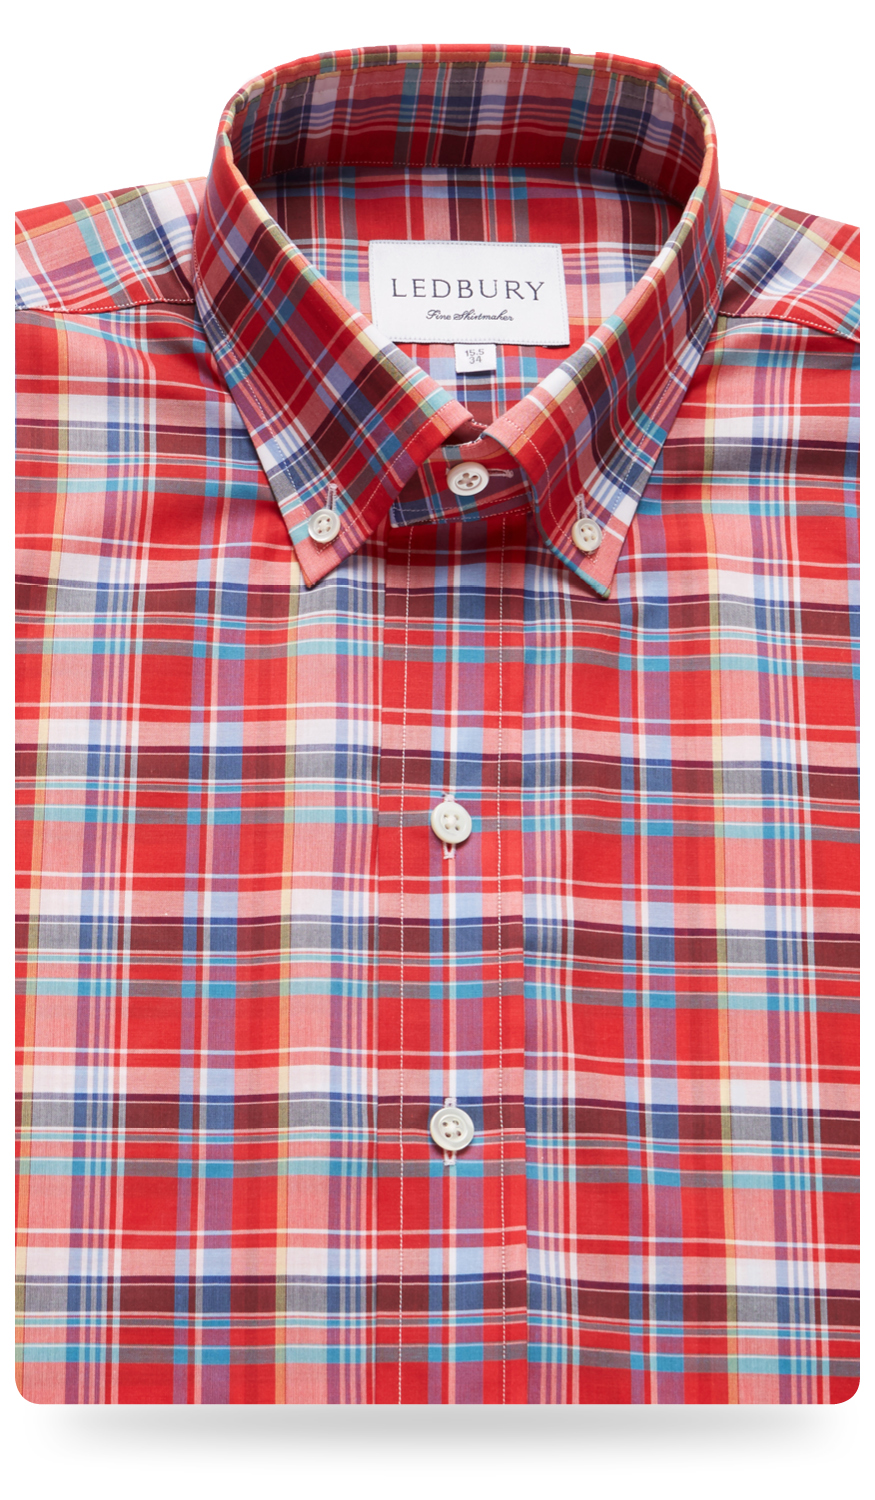 The Red Olsen Plaid